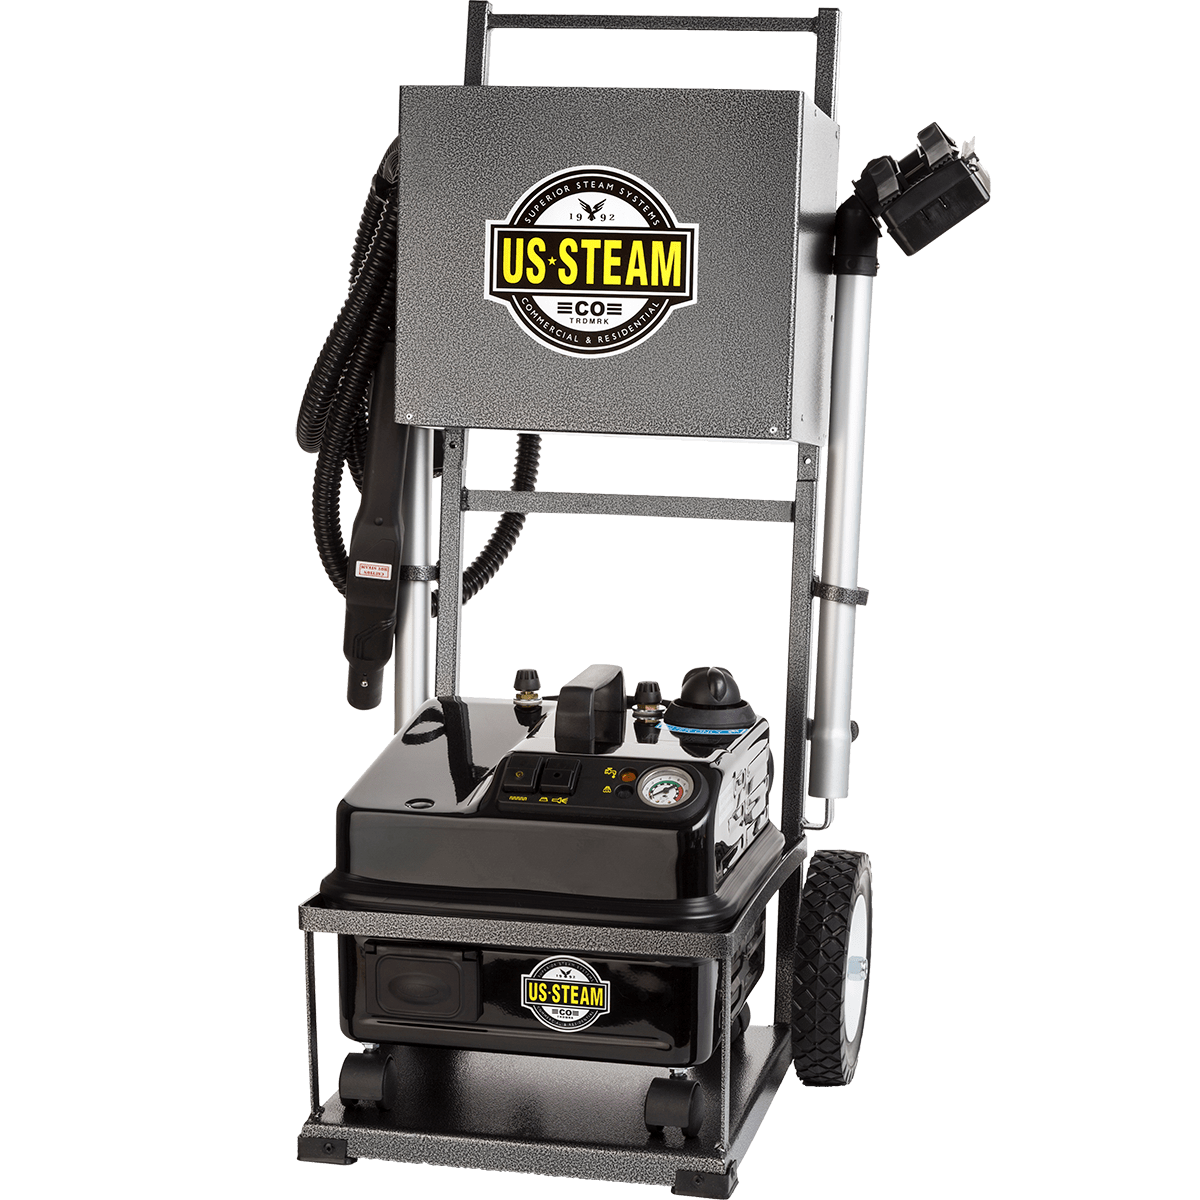 US Steam Eagle US6100 Commercial Steam Cleaner with Cart eu4761